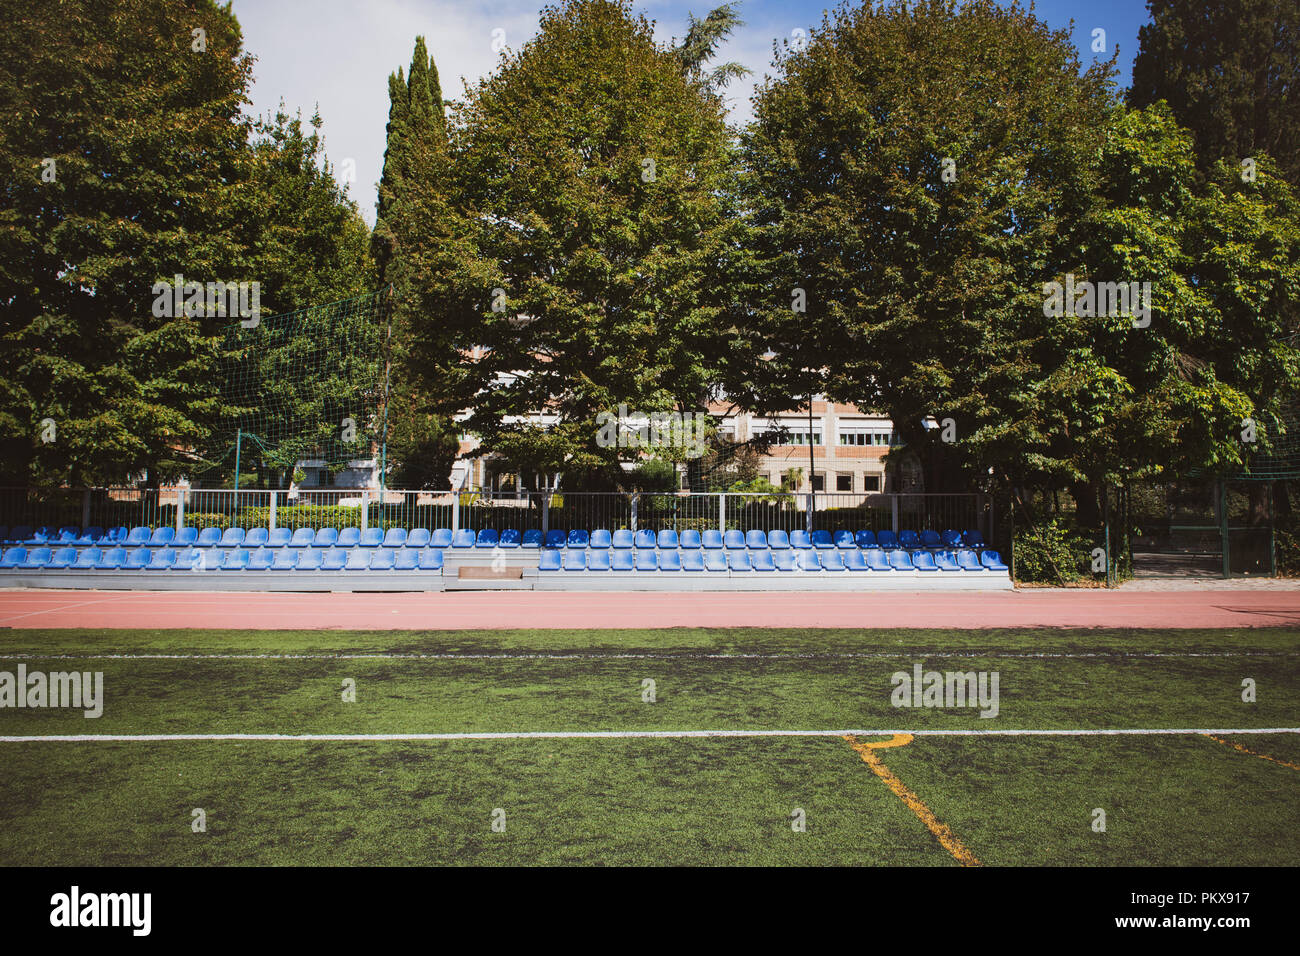 Blue stand seats line wide shot in park with green sports field - Stock Image